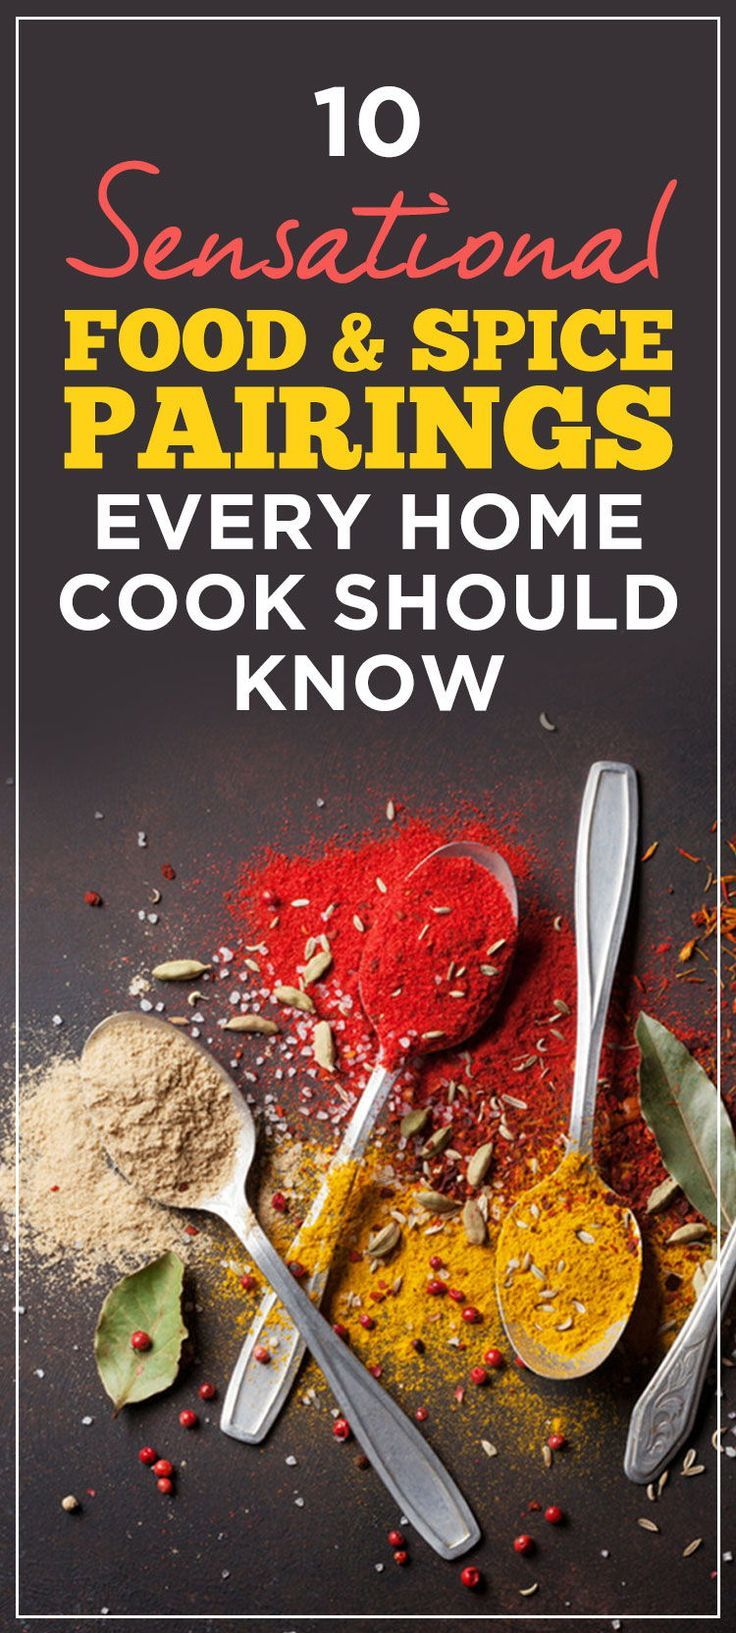 10 Sensational Food And Spice Pairings Every Home Cook Should Know Tasteofhome Delicious Healthy Recipes Food Cooking